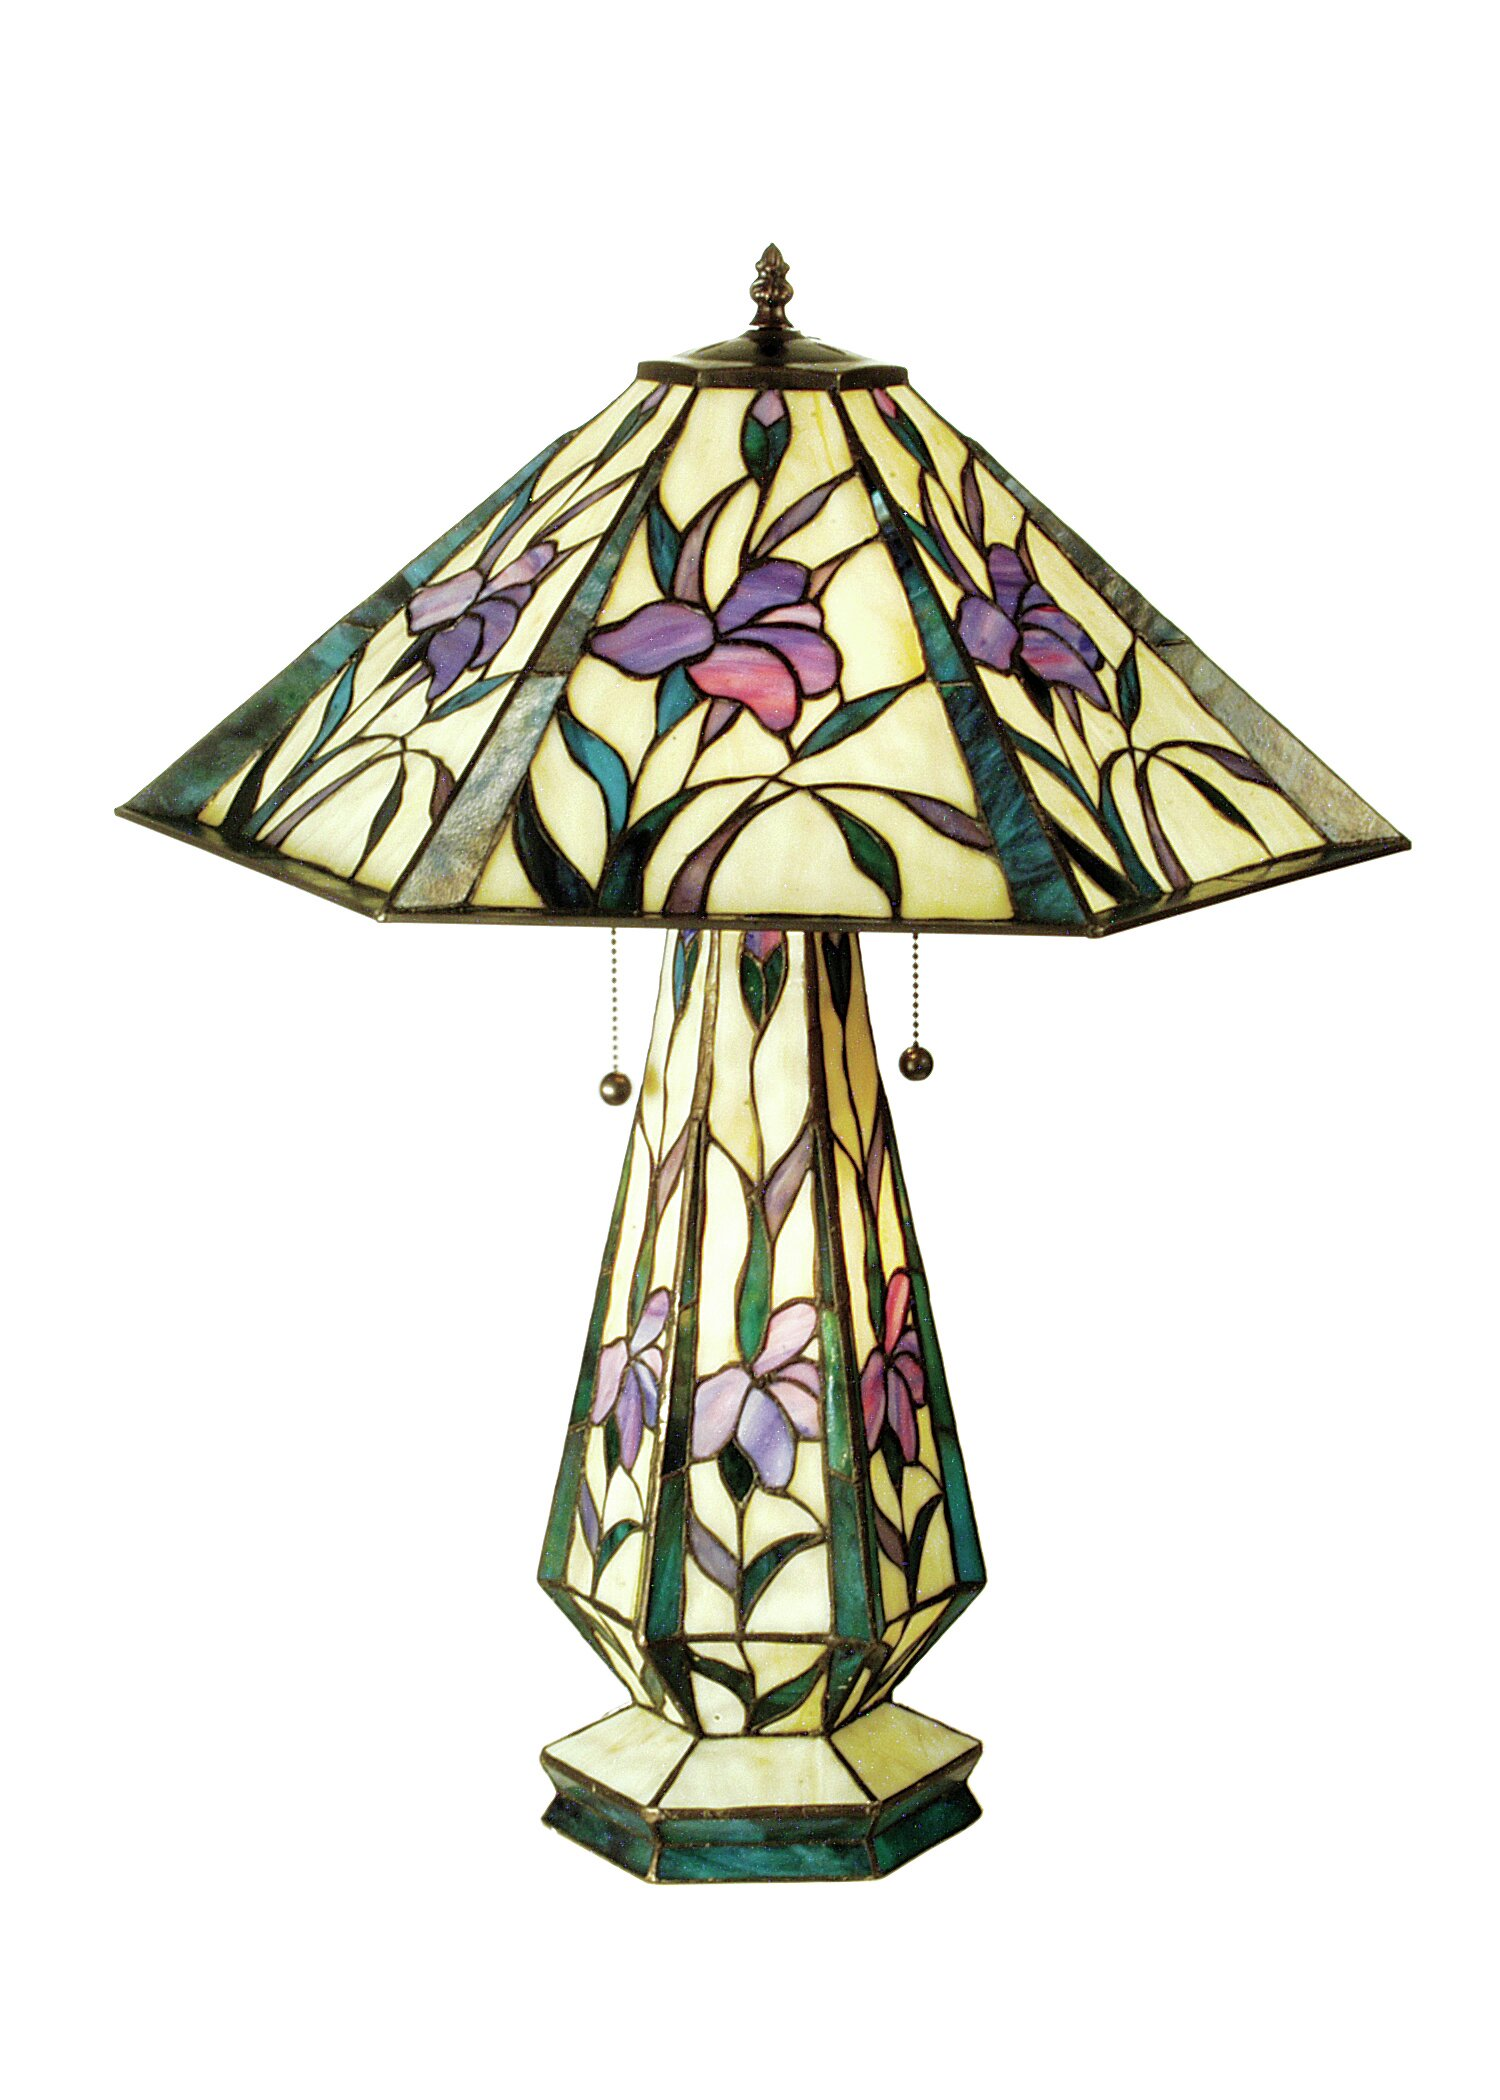 Meyda Tiffany Iris Hex Lighted Base 25 Table Lamp Wayfair